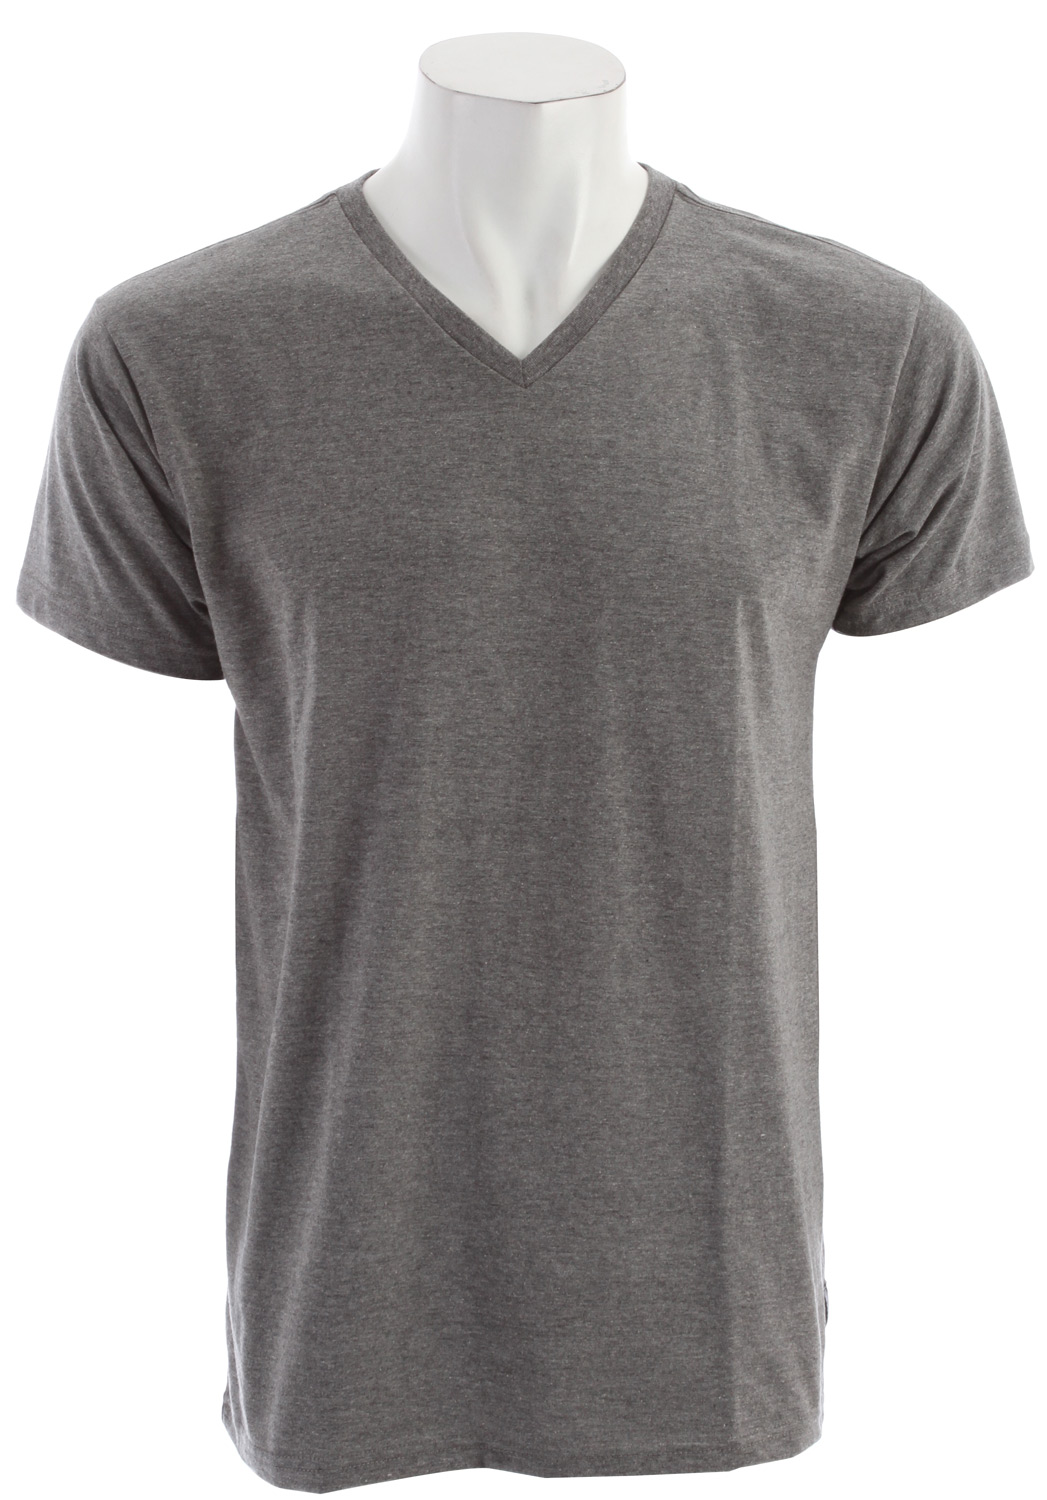 Surf Key Features of the Billabong Essential V Neck T-Shirt: Regular fit v-neck with an essential woven label and pvc-free head sealed neck label 50% recycled polyester/50% organic cotton - $20.00